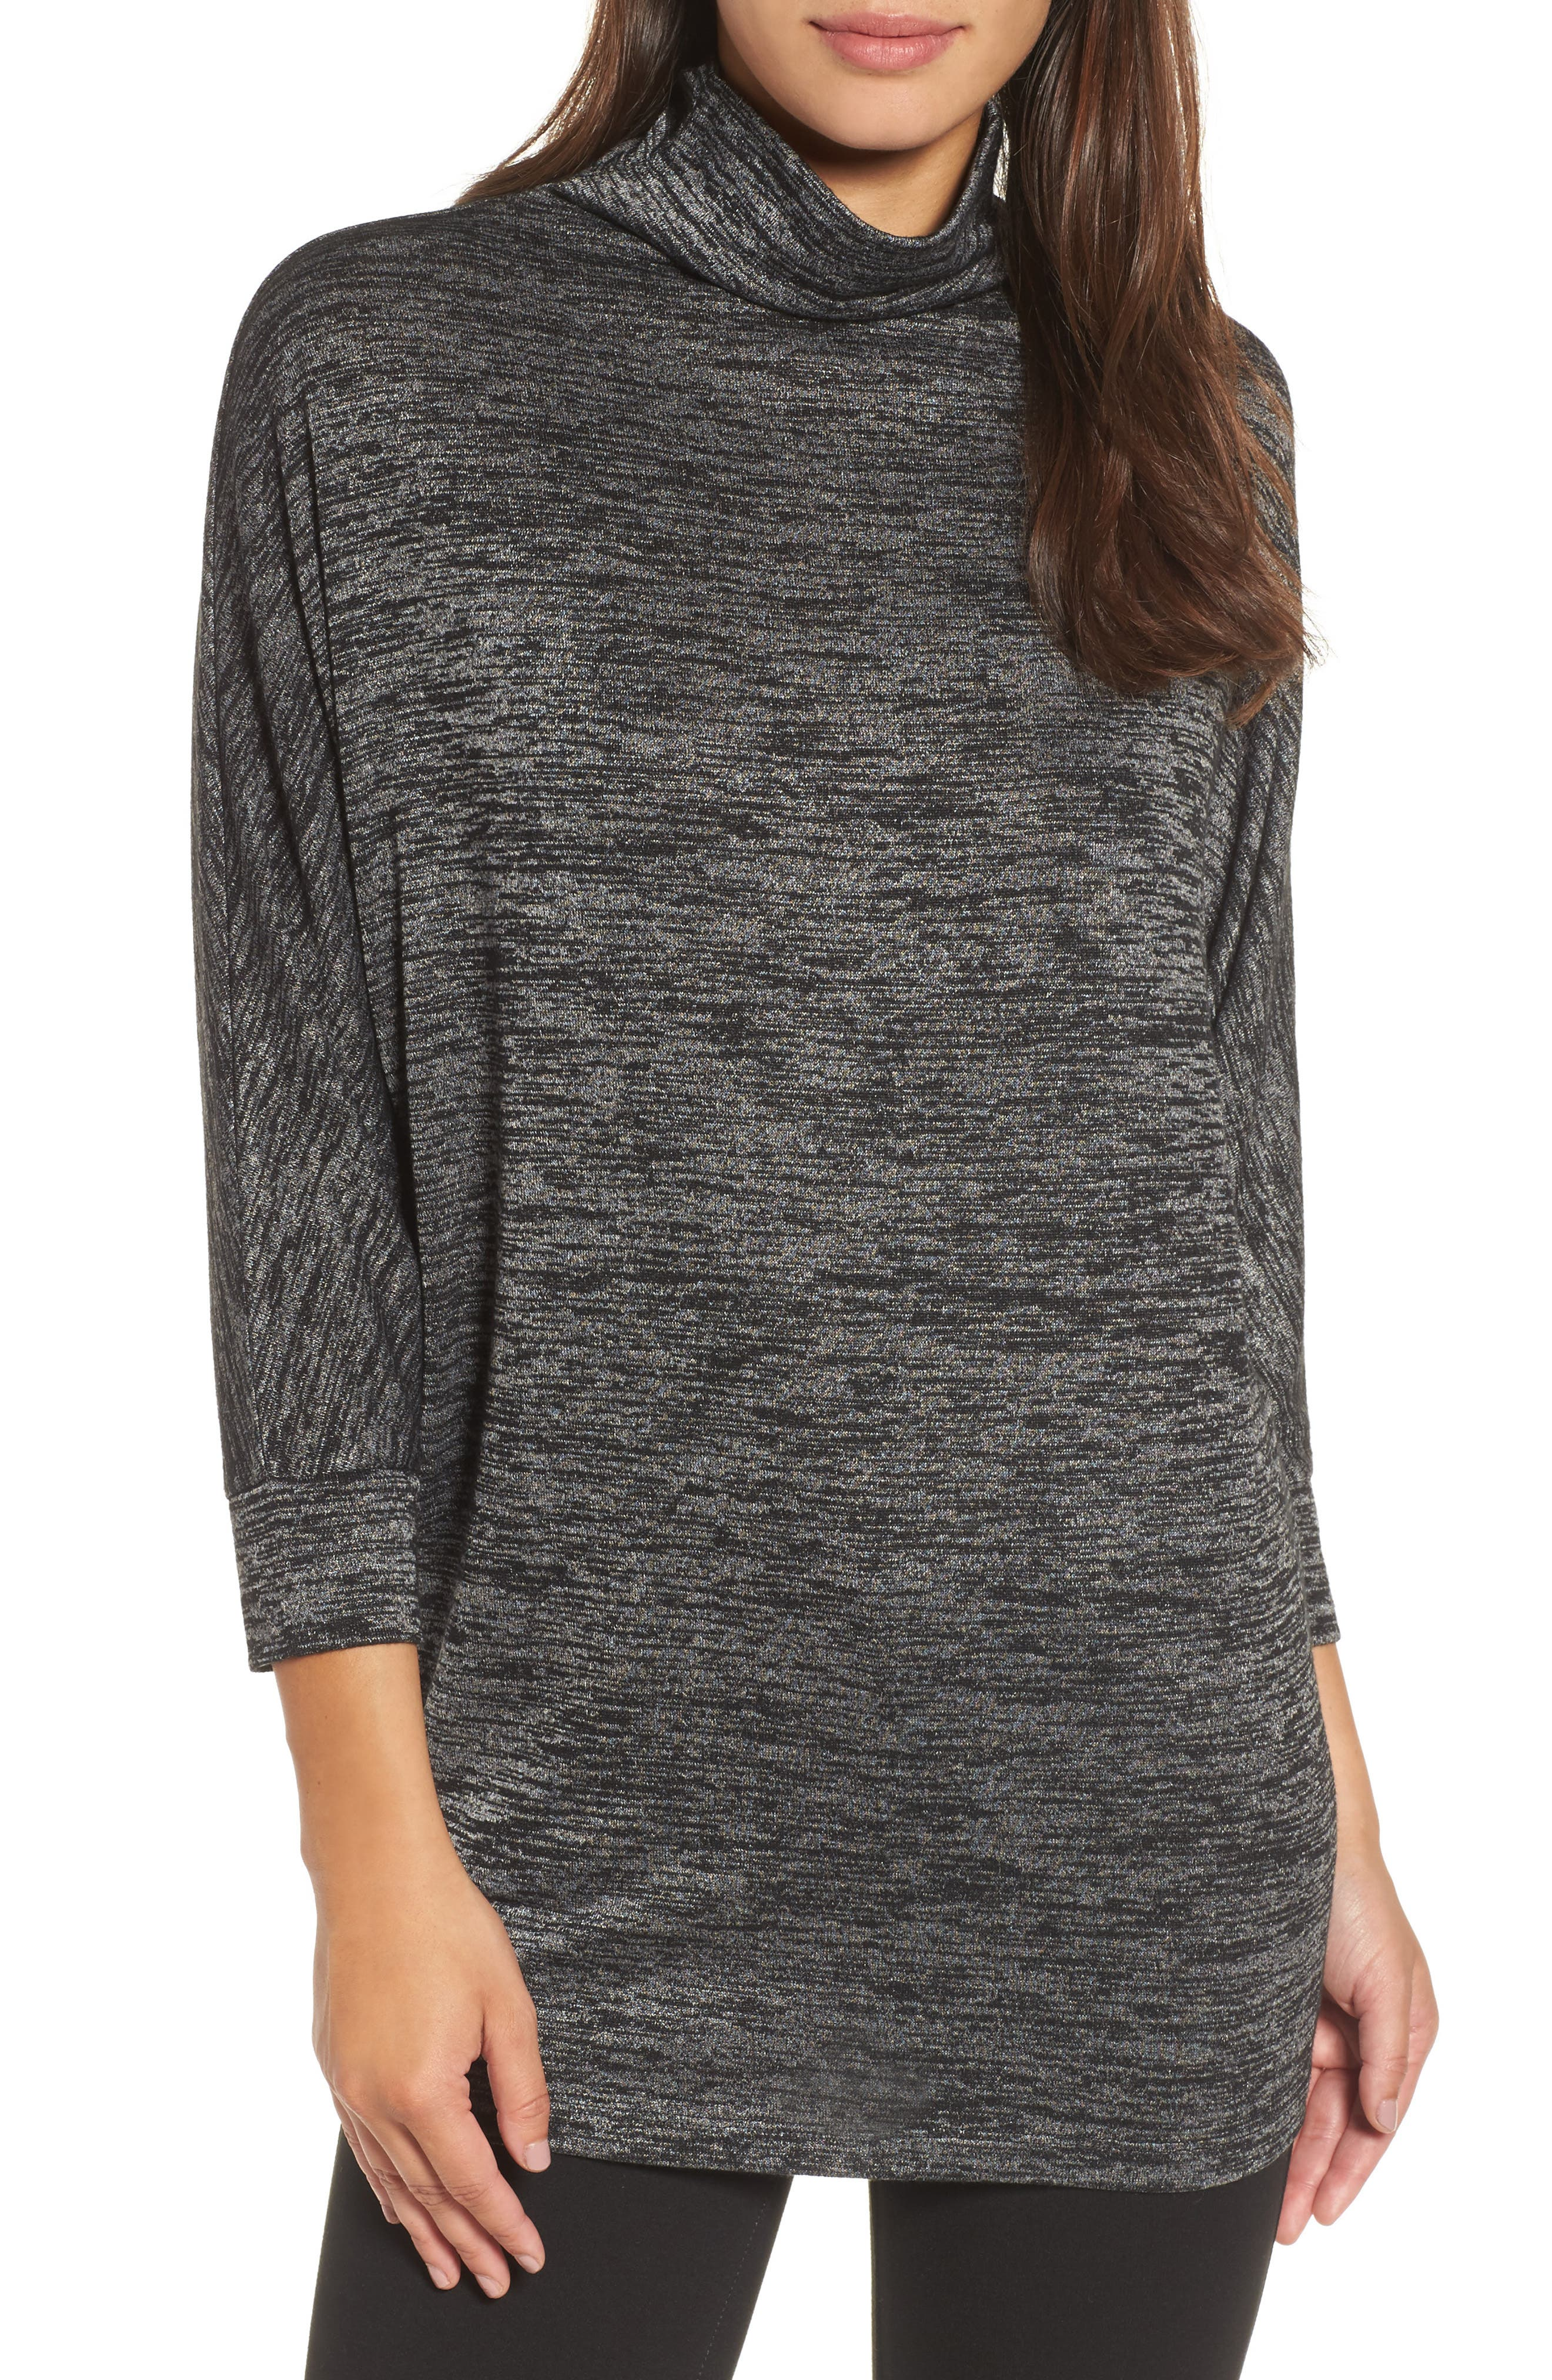 Every Occasion Mockneck Top,                             Main thumbnail 1, color,                             Grey Mix